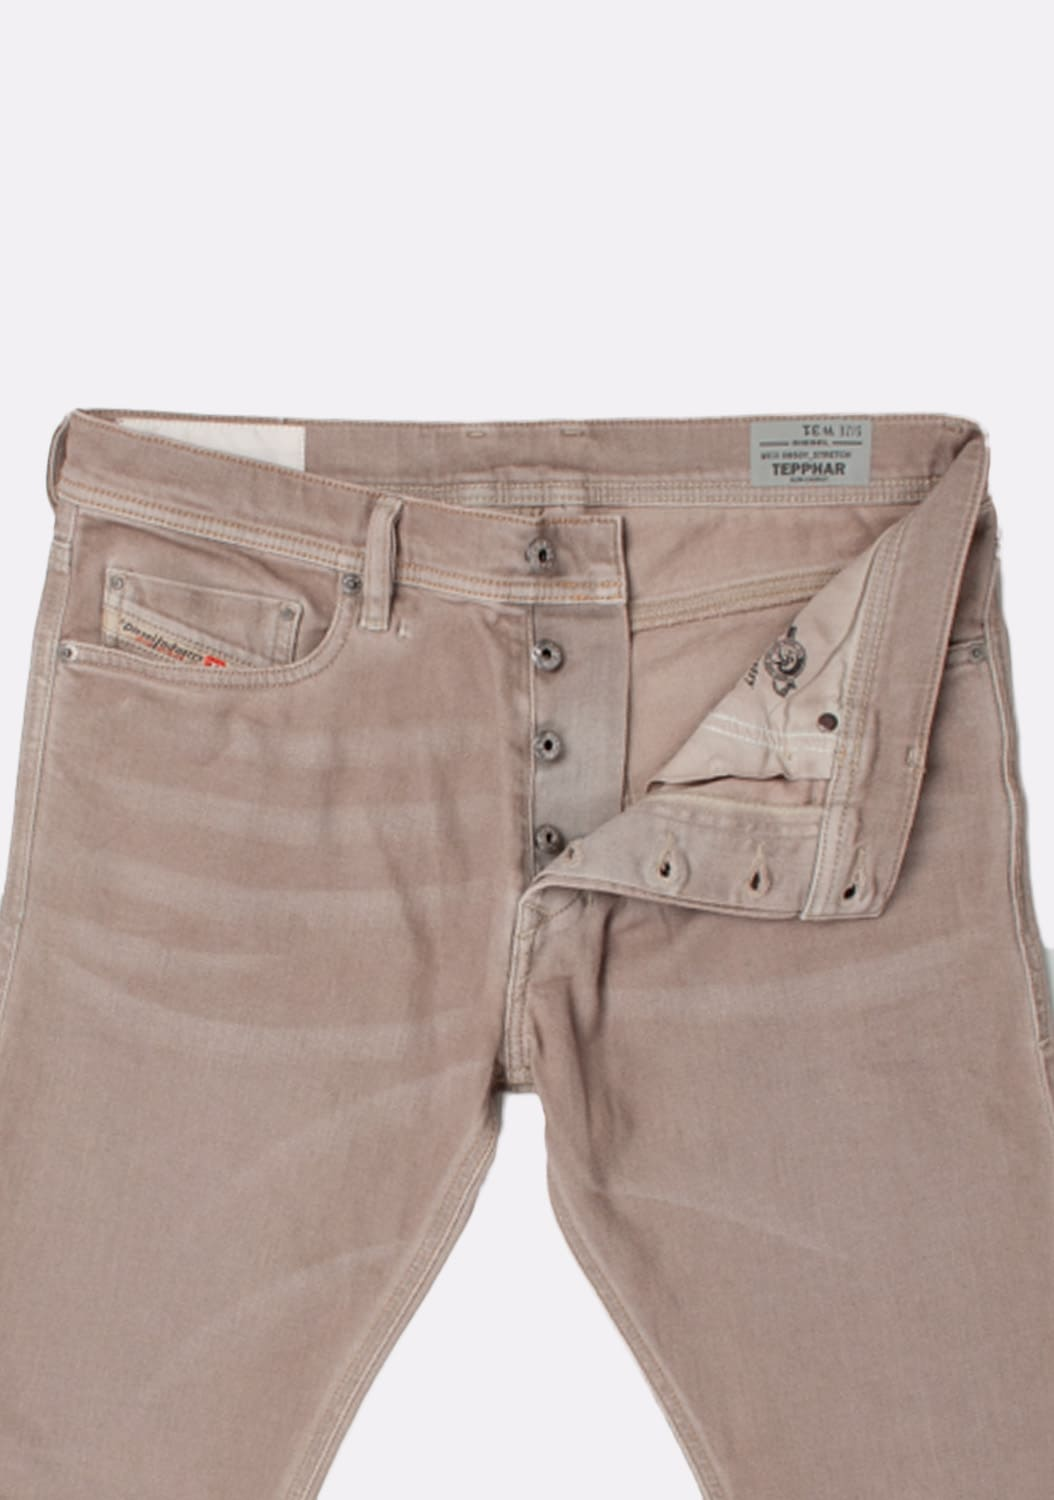 Diesel-Tepphar-0850Y-Stretch-Slim-Carrot-dzinsai-dydis-31 (4)